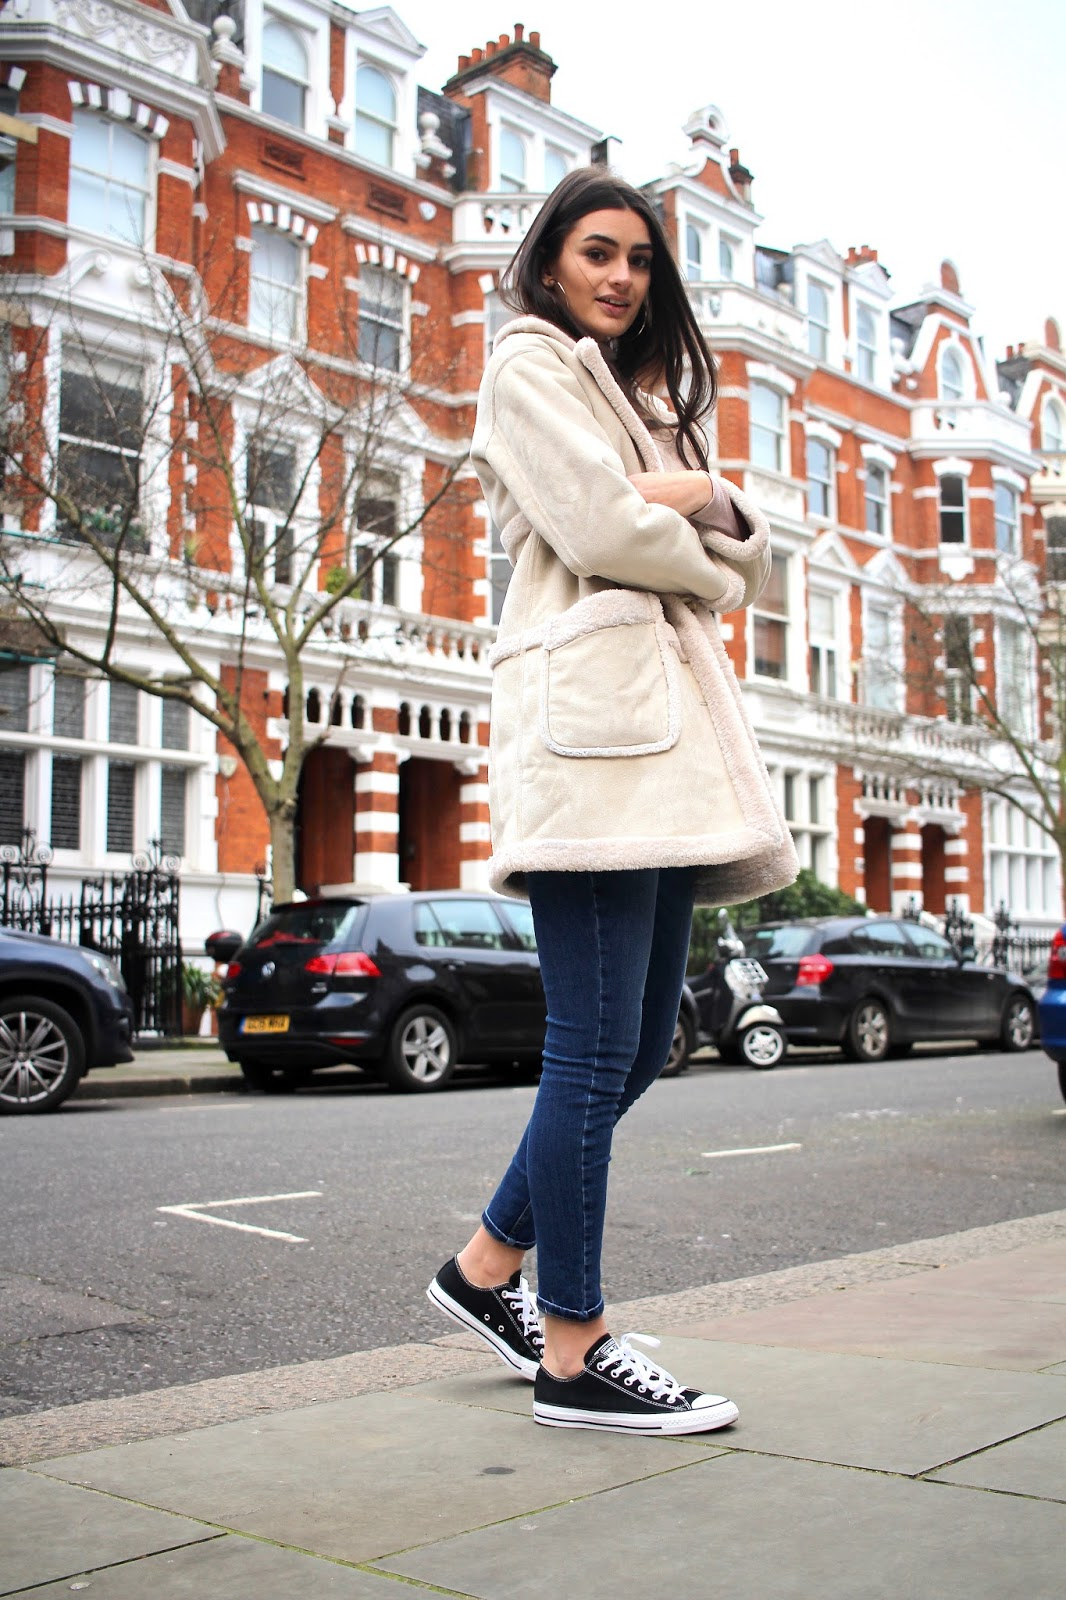 peexo capsule wardrobe london